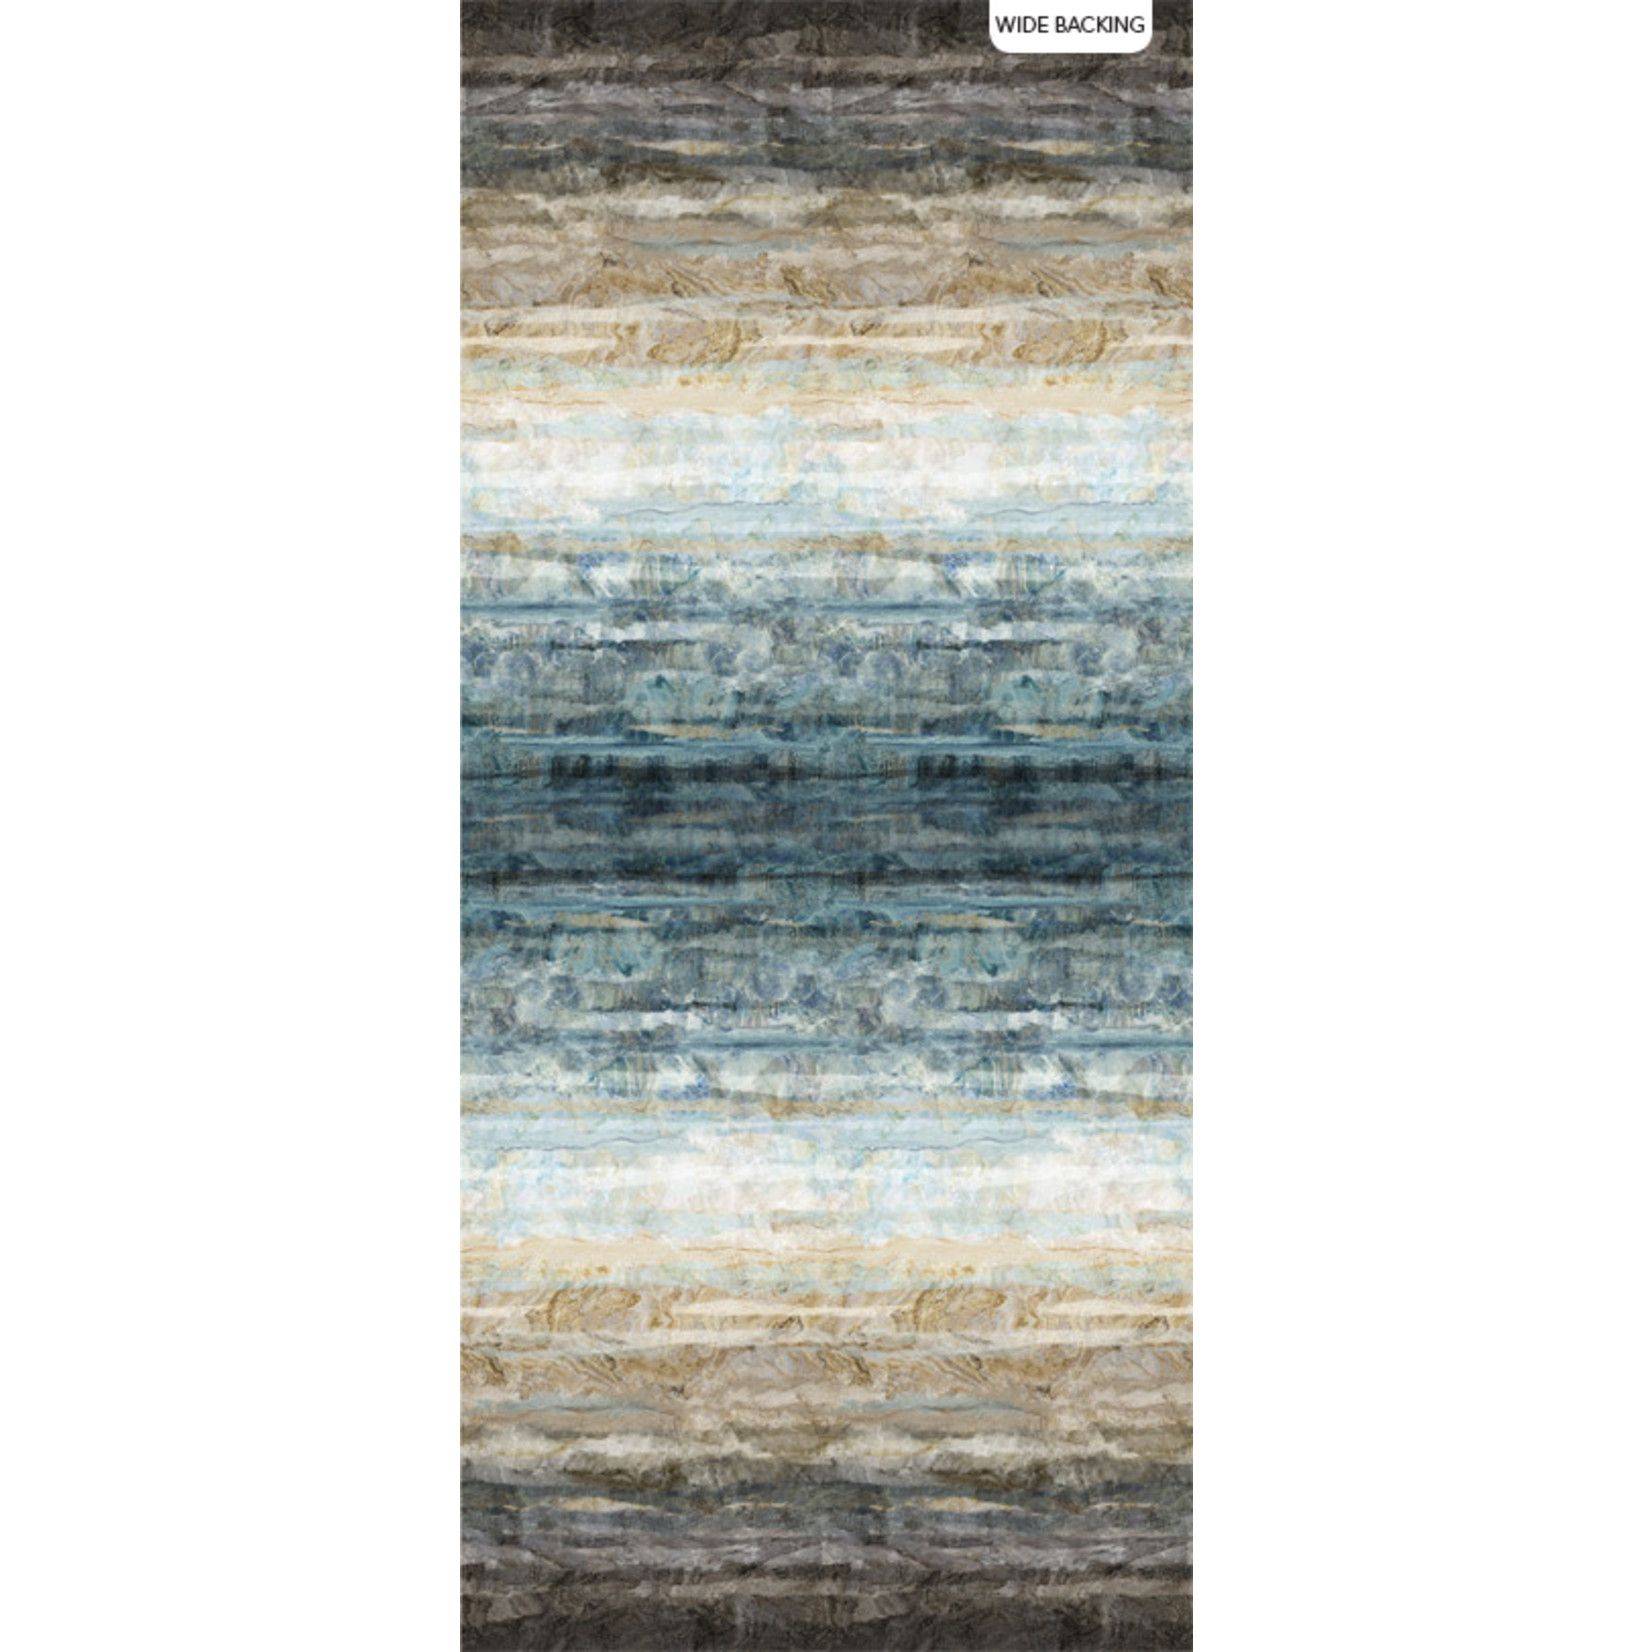 Northcott New Dawn - Textured Ombre